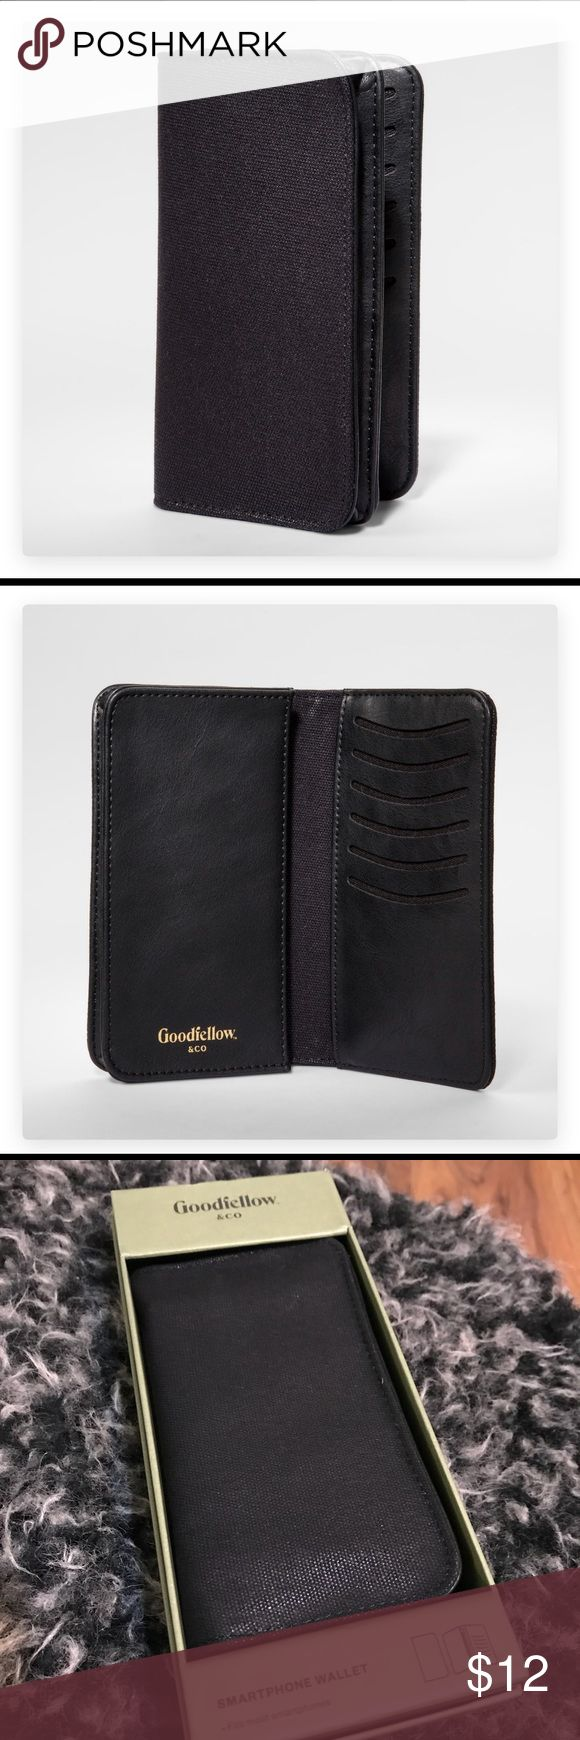 NWT Goodfellow Men's Cellphone Wallet Keep all your important pocket contents in one place with the Phone/Card Case Wallet from Goodfellow & Co™. This spacious carrying case is perfect for stashing your phone, credit cards, ID and anything else you need to hold. The slim profile is small enough to fit in a pocket or bag pouch, and the protective cotton shell helps hold things safely and securely.  6 in x 3.6 in case size fits most smartphones Features pockets for up to 6 cards Goodfellow…